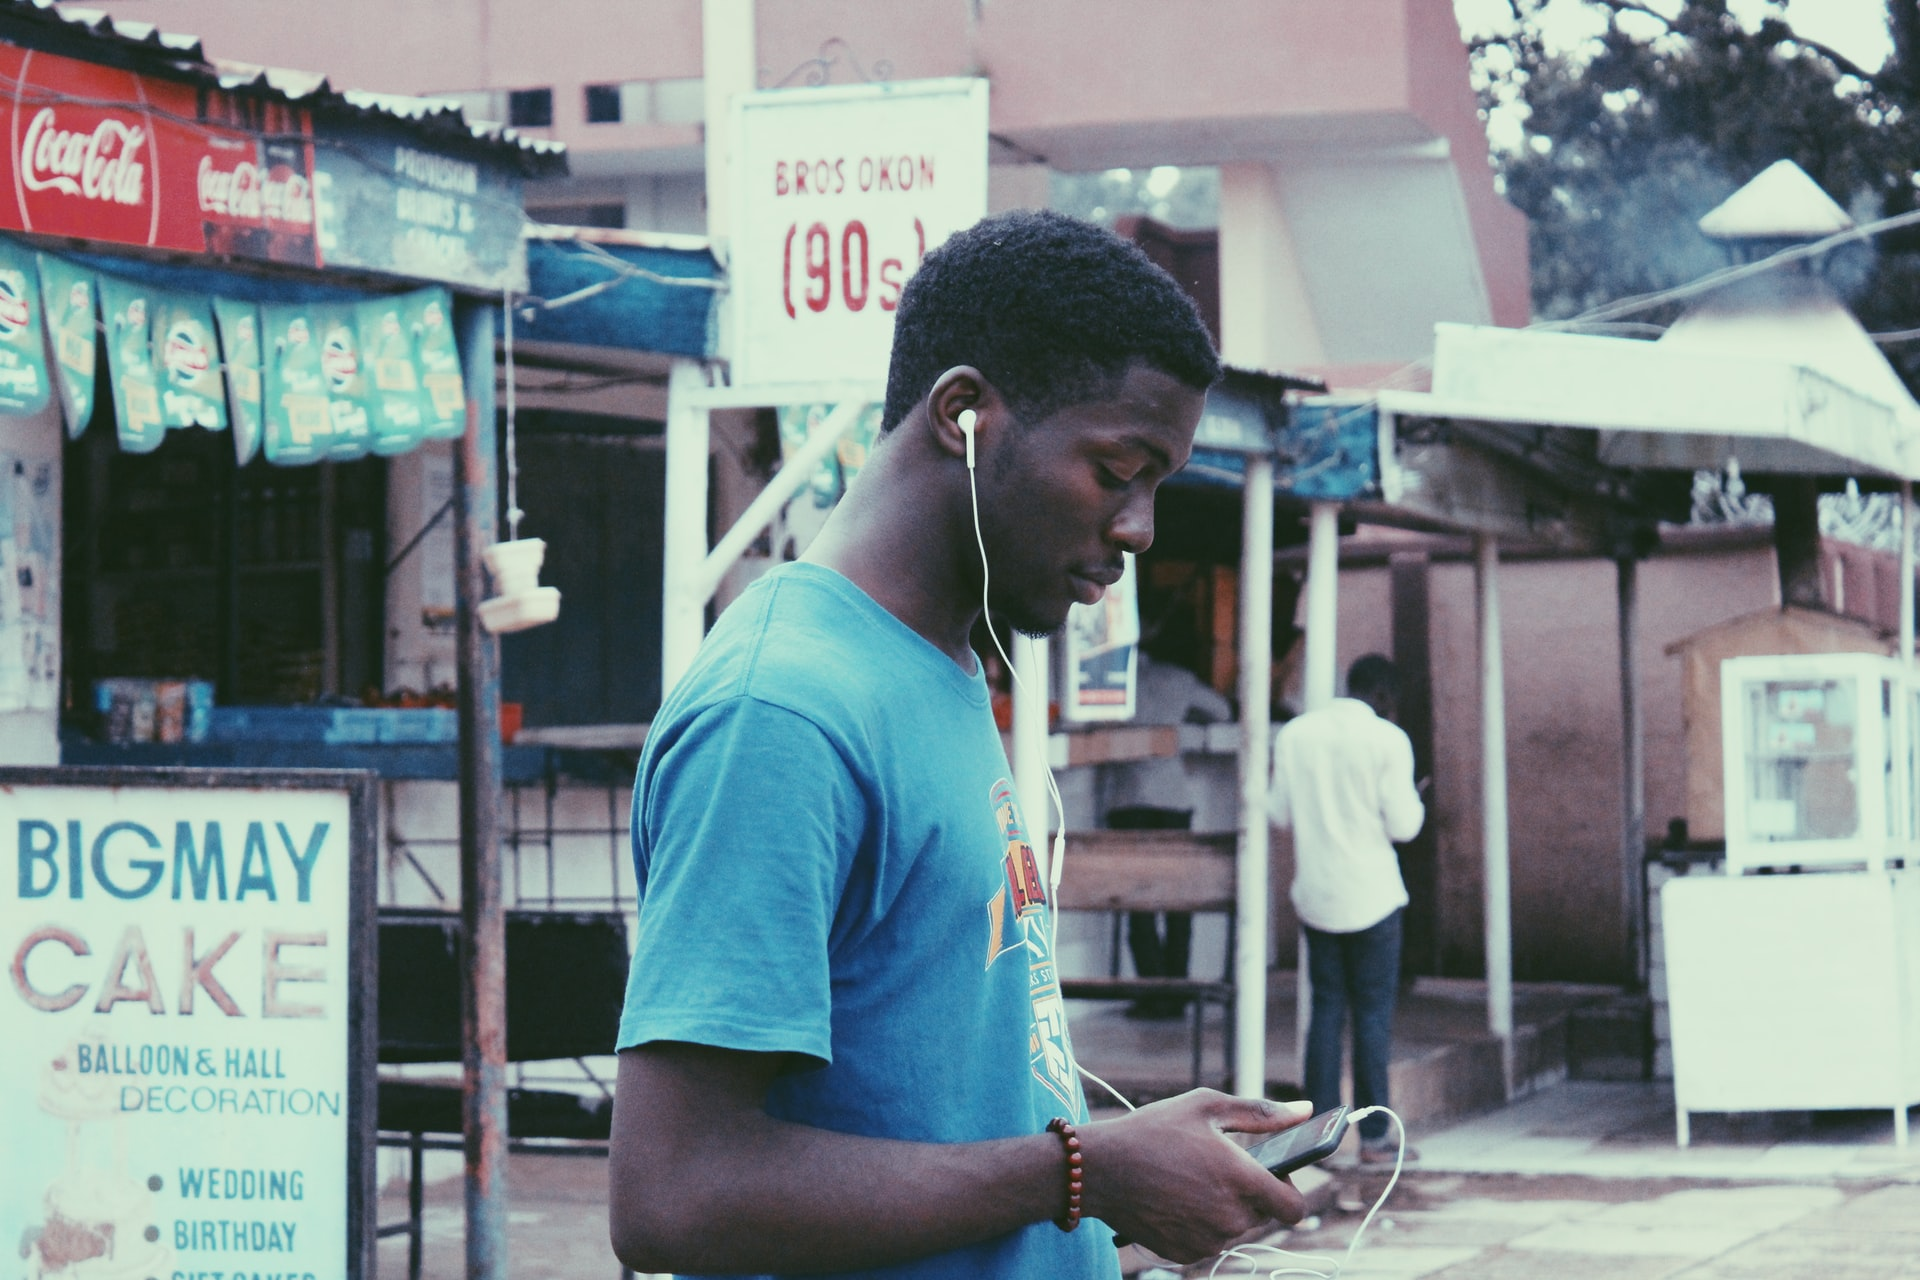 A man uses his smartphone with white earphones running to his ears